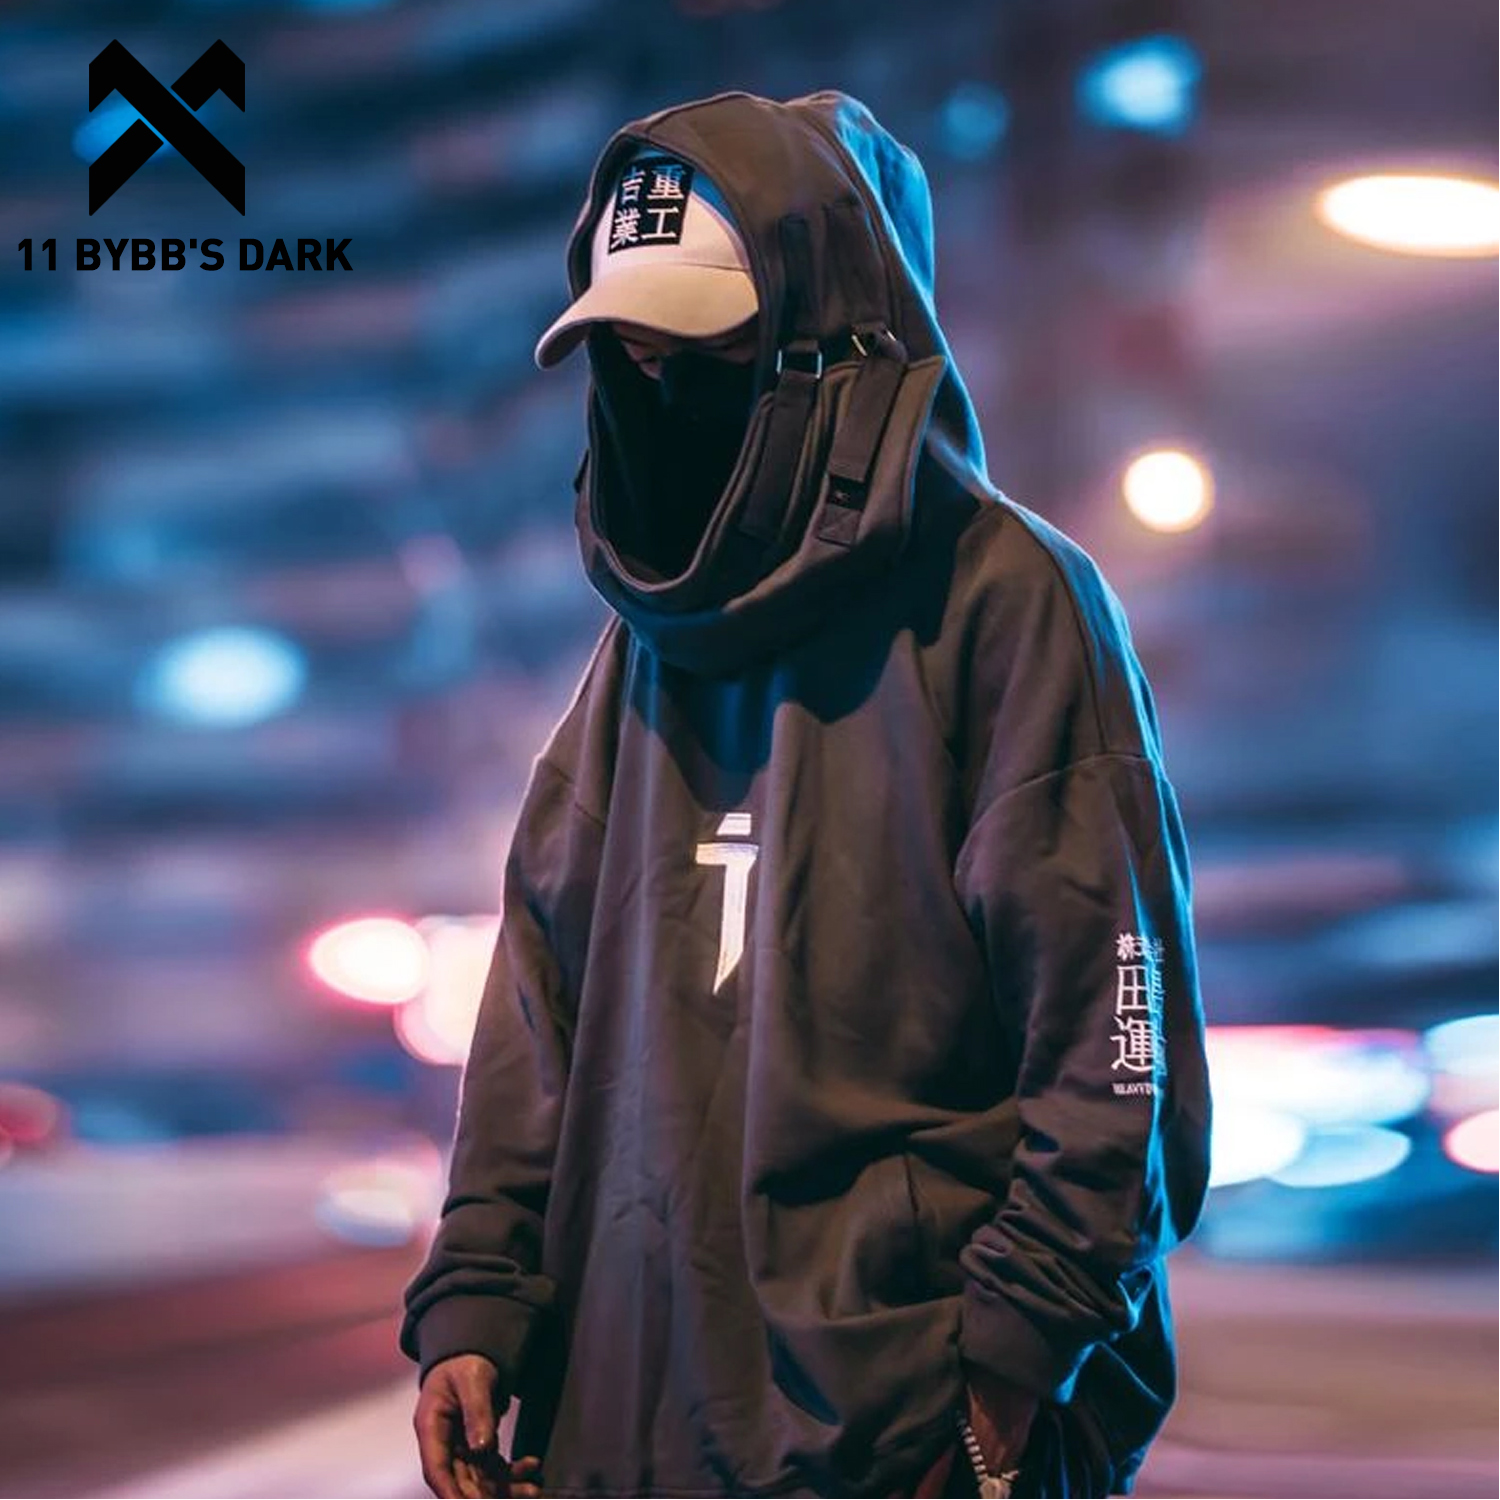 11 BYBB'S DARK Japanese Streetwear Hoodie Men Harajuku Neck Fish Mouth Pullovers Sweatshirts Oversized Hip Hop Hoodies Techwear